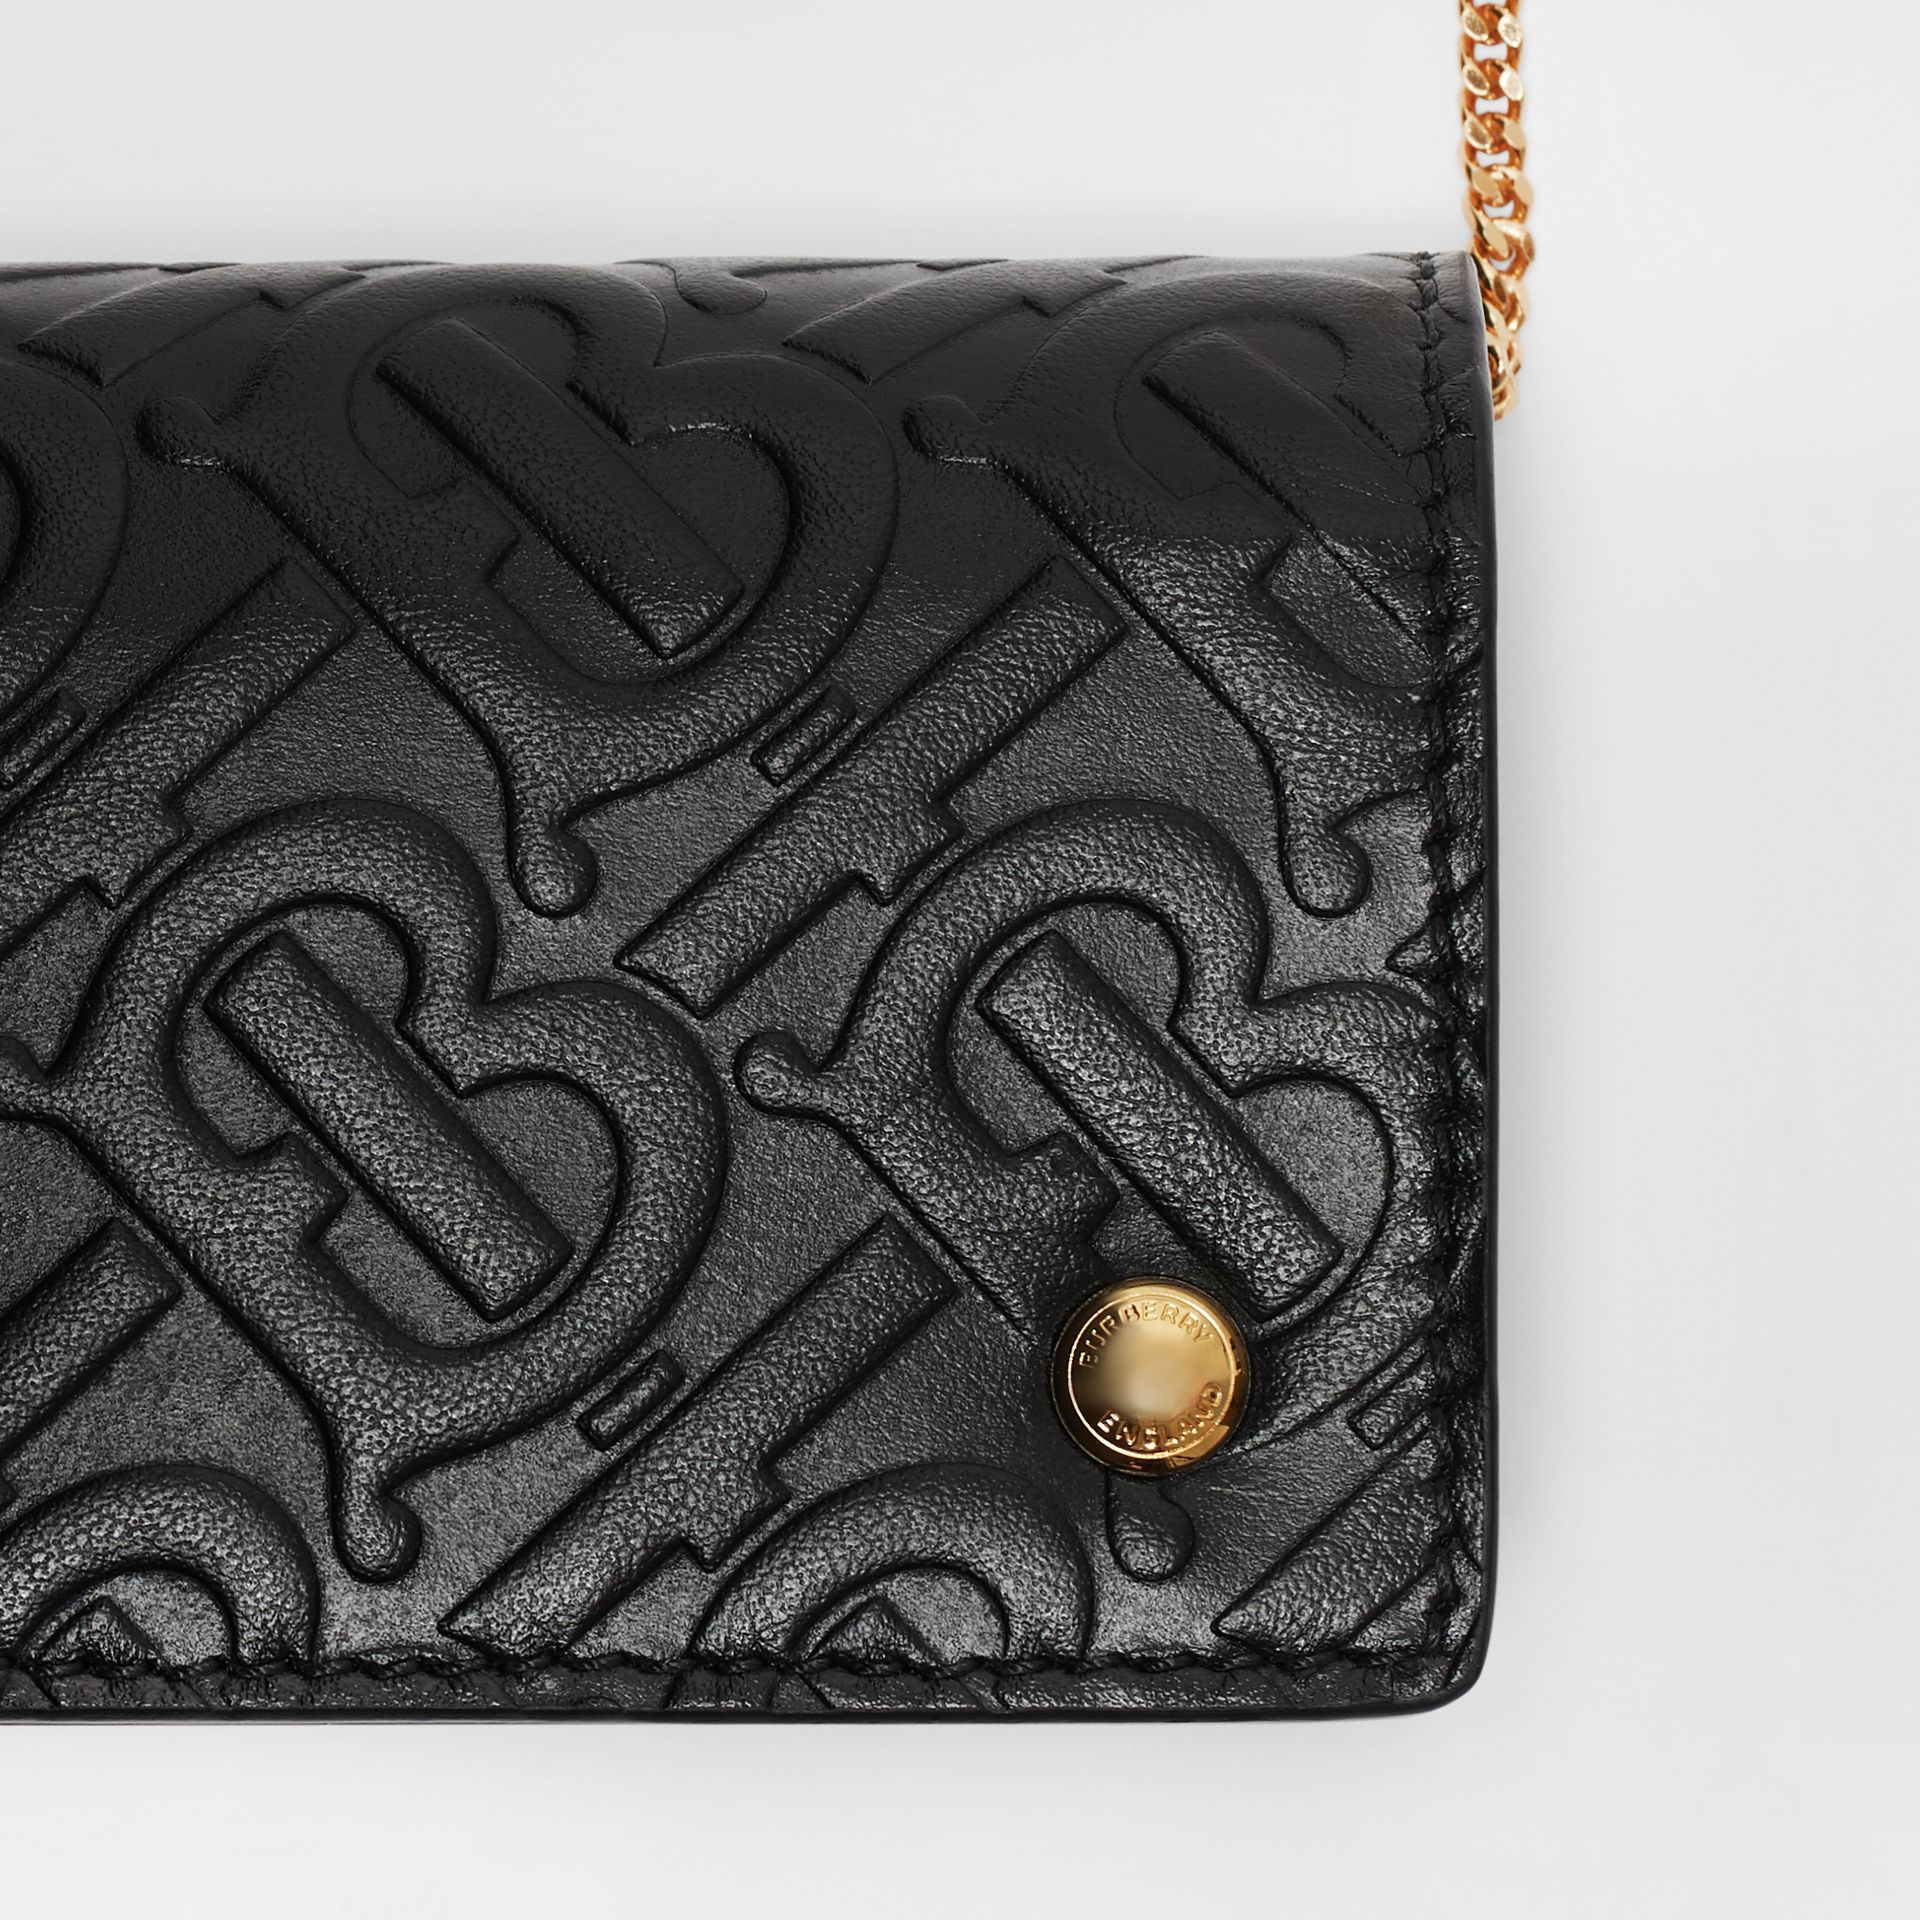 Monogram Leather Card Case with Detachable Strap in Black - Women | Burberry Singapore - gallery image 1